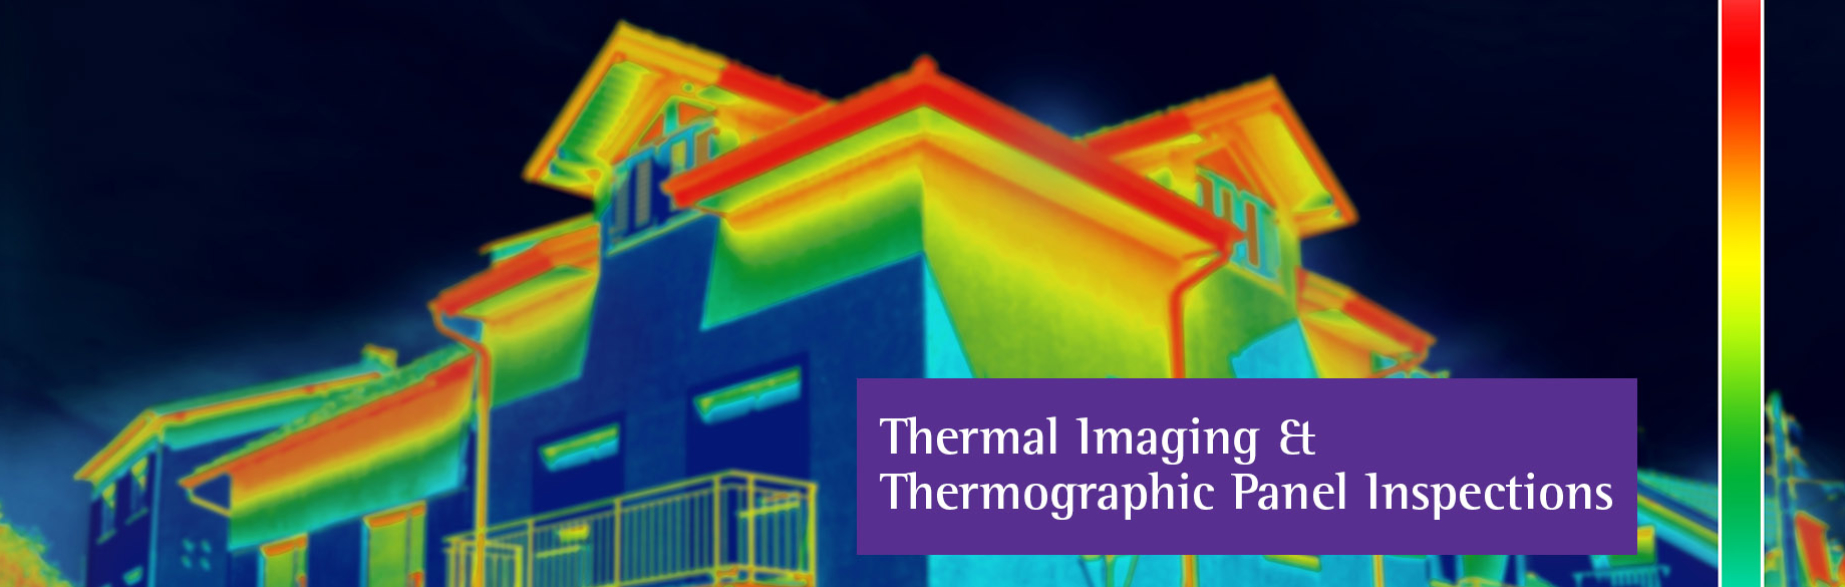 Evolve Energy - Thermal Imaging & thermographic panel inspections